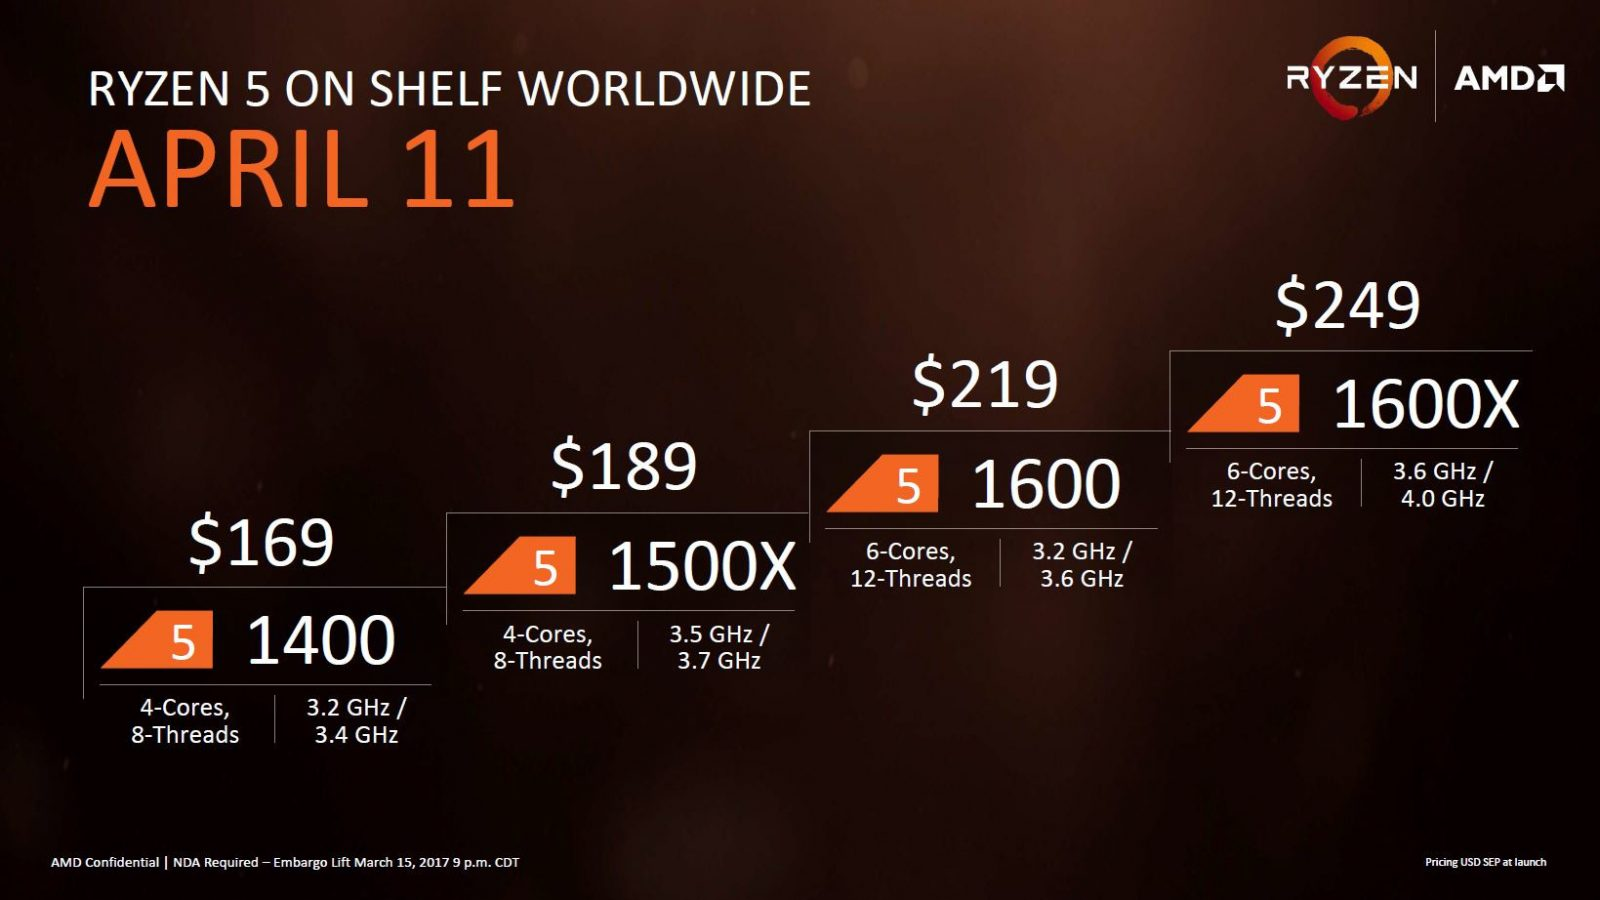 Amd Officially Announces The Ryzen 5 Series 6 Core And 4 Core Desktop Processors